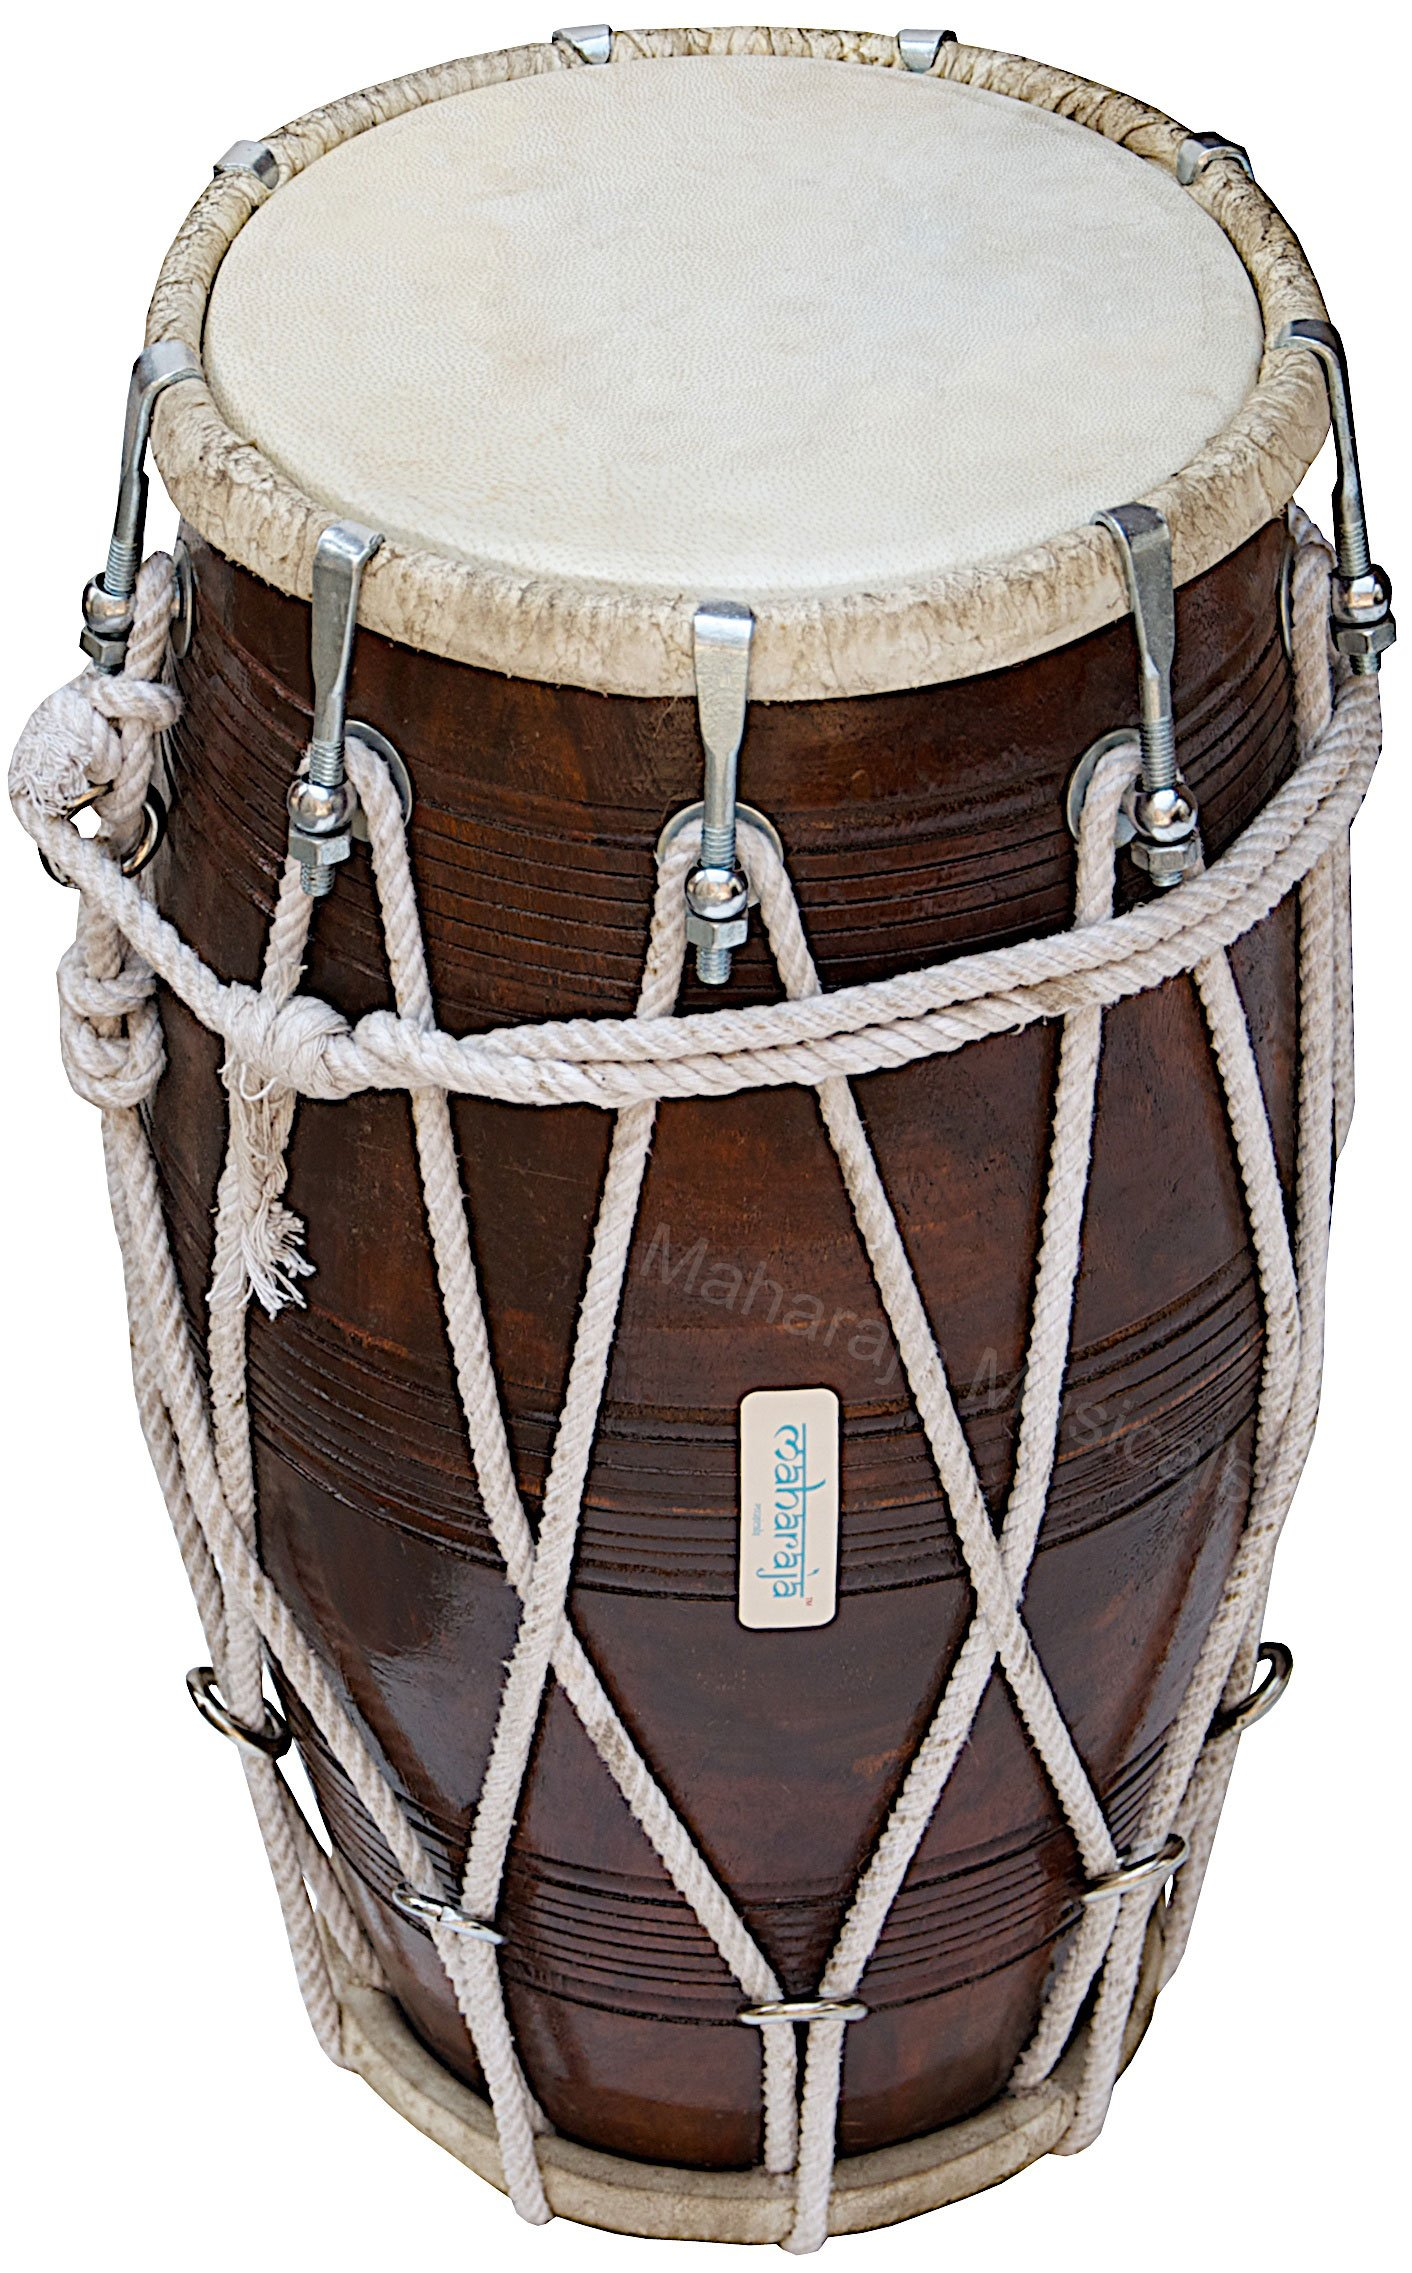 Special Dholak Drum by Maharaja Musicals, Professional Quality, Sheesham Wood, Padded Bag, Spanner, Dholki Musicals Instrument (PDI-BBC) by Maharaja Musicals (Image #7)